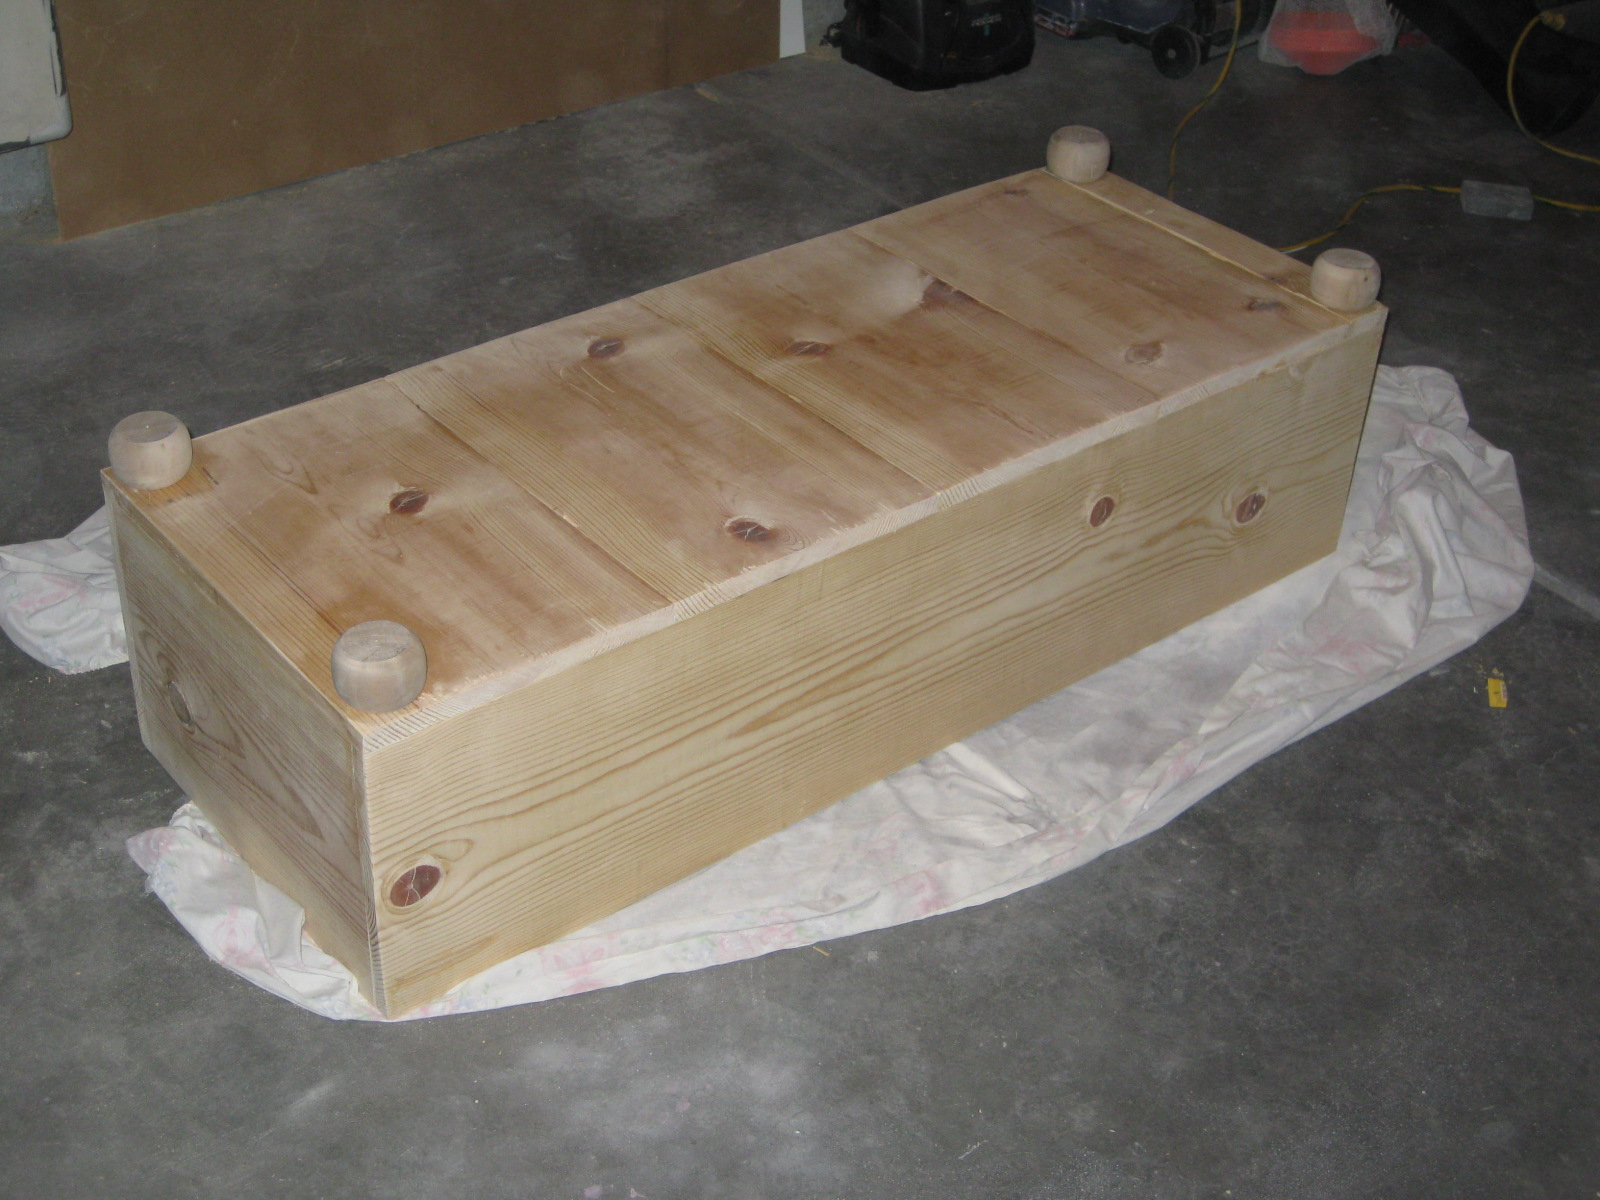 Tda decorating and design storage ottoman building the for How to build an ottoman with storage